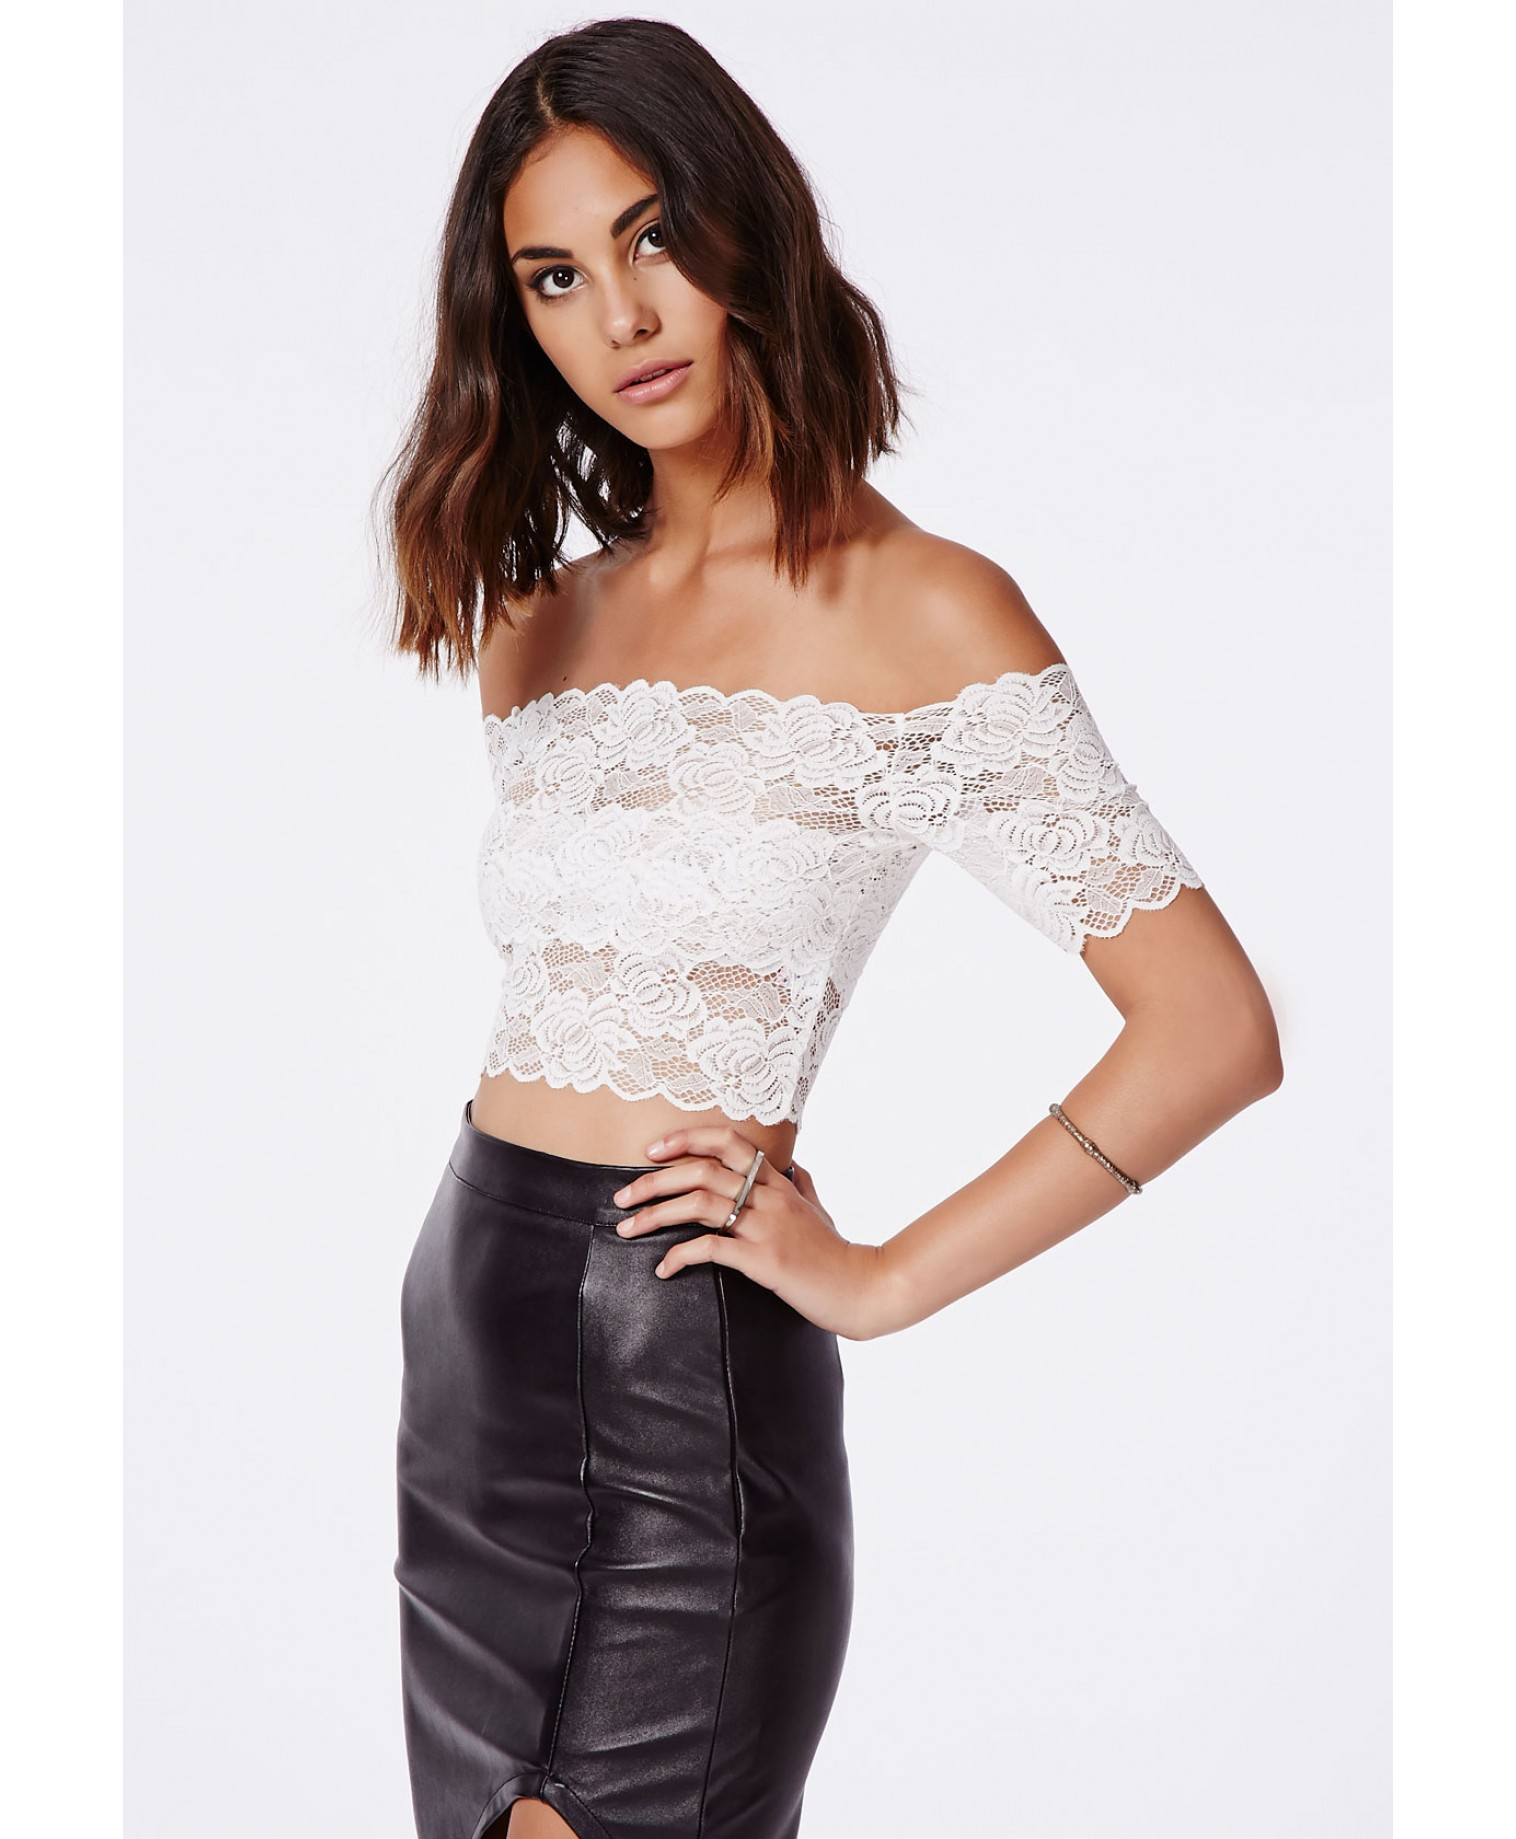 ae747f52f2d585 Lyst - Missguided Telimesa White Bardot Lace Crop Top in White